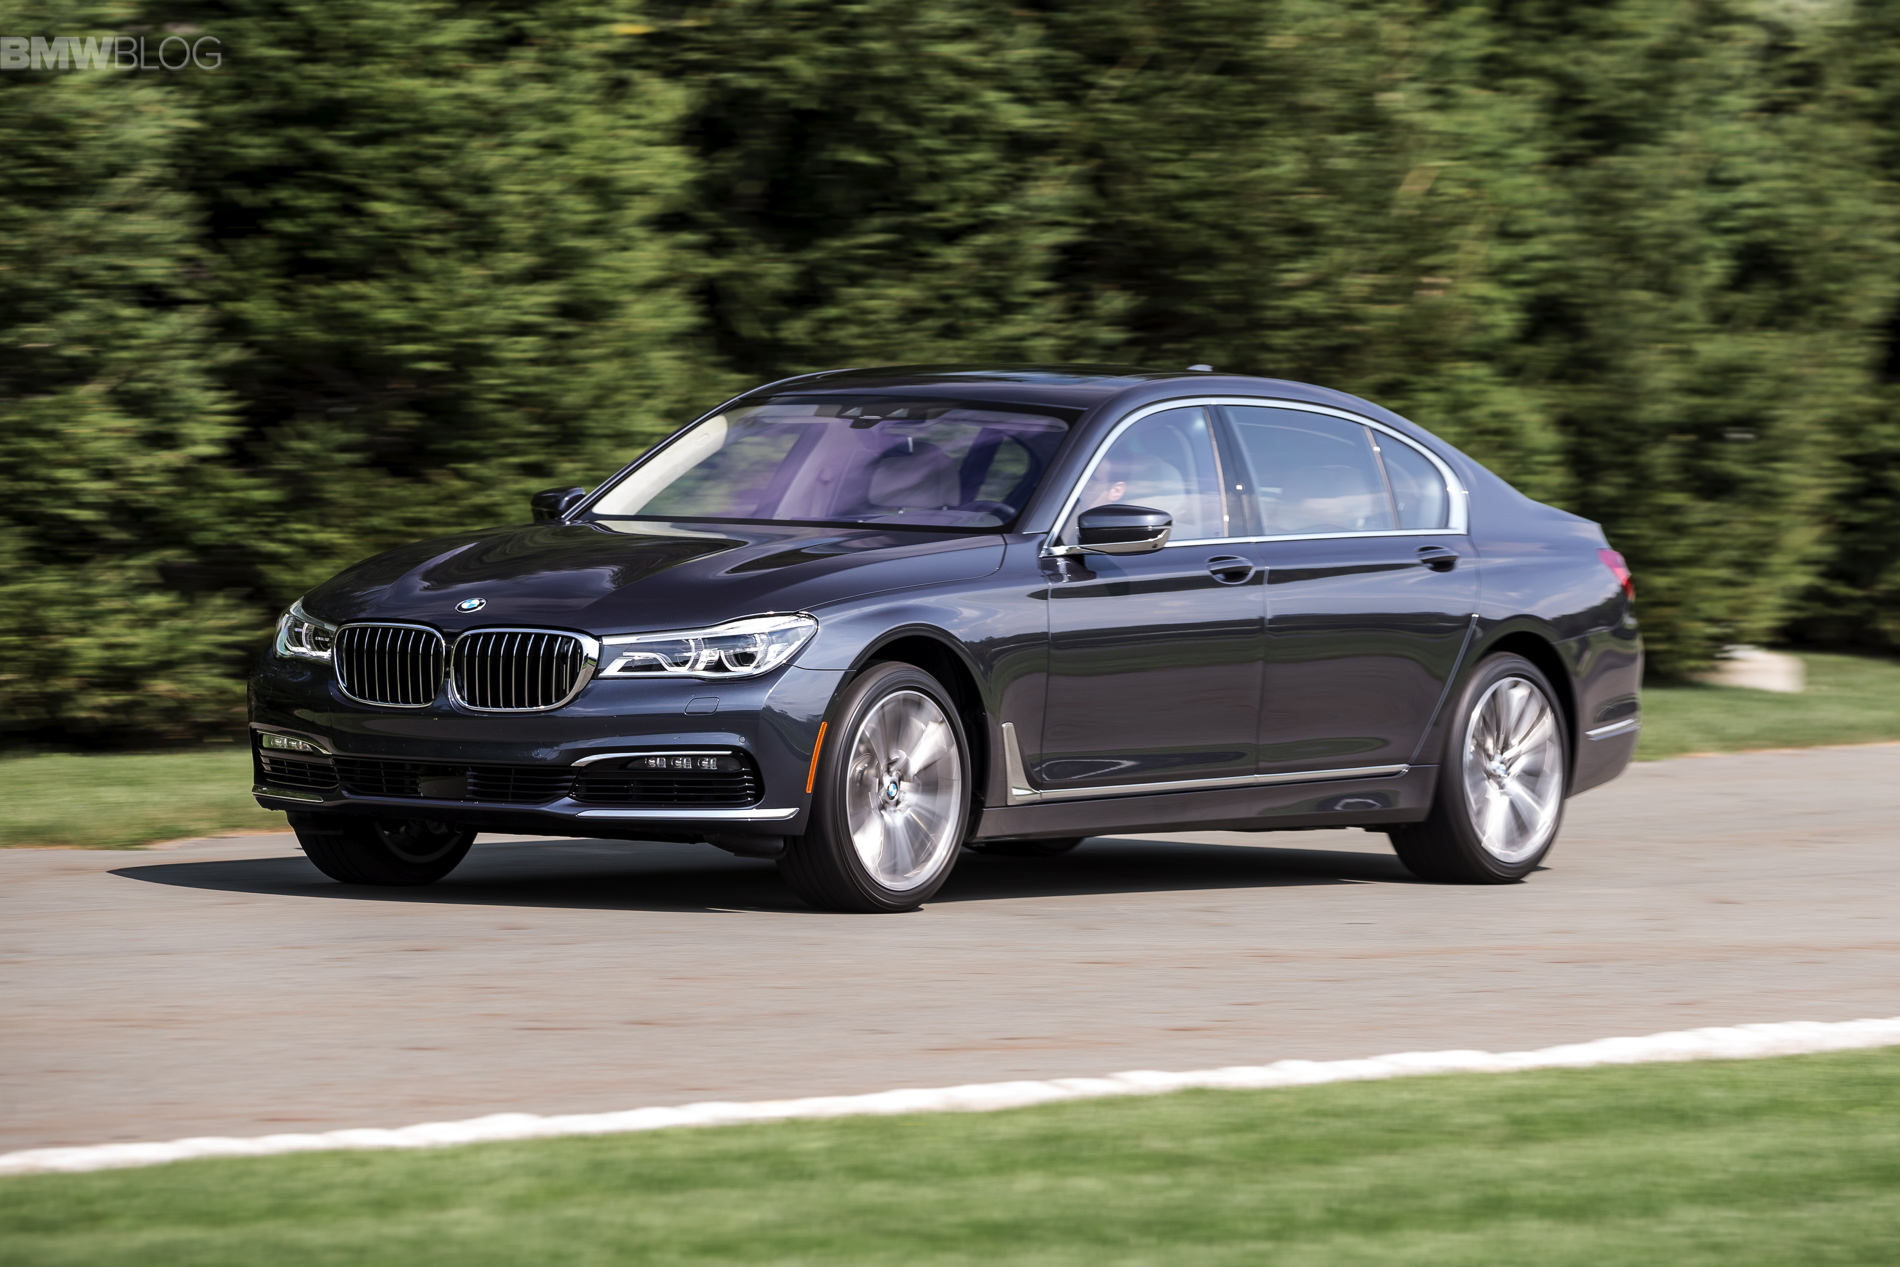 2016 bmw 7 series launch new york images 1900x 1200 107